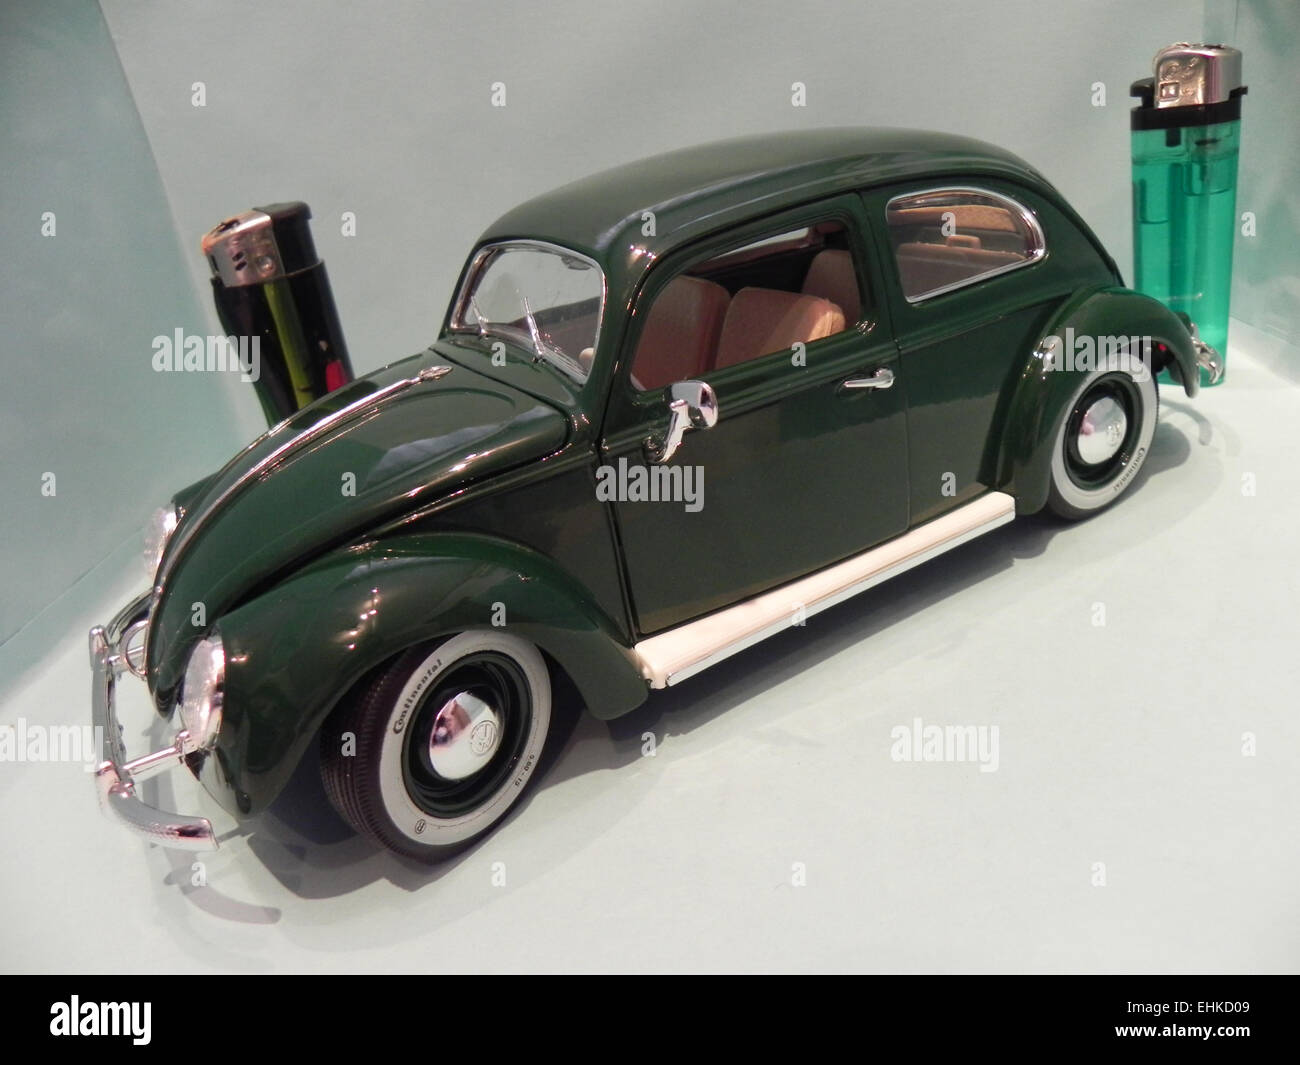 My miniature of an old Volkswagen Beetle, mythical car produced in Germany since 1938 and sold all over the world - Stock Image